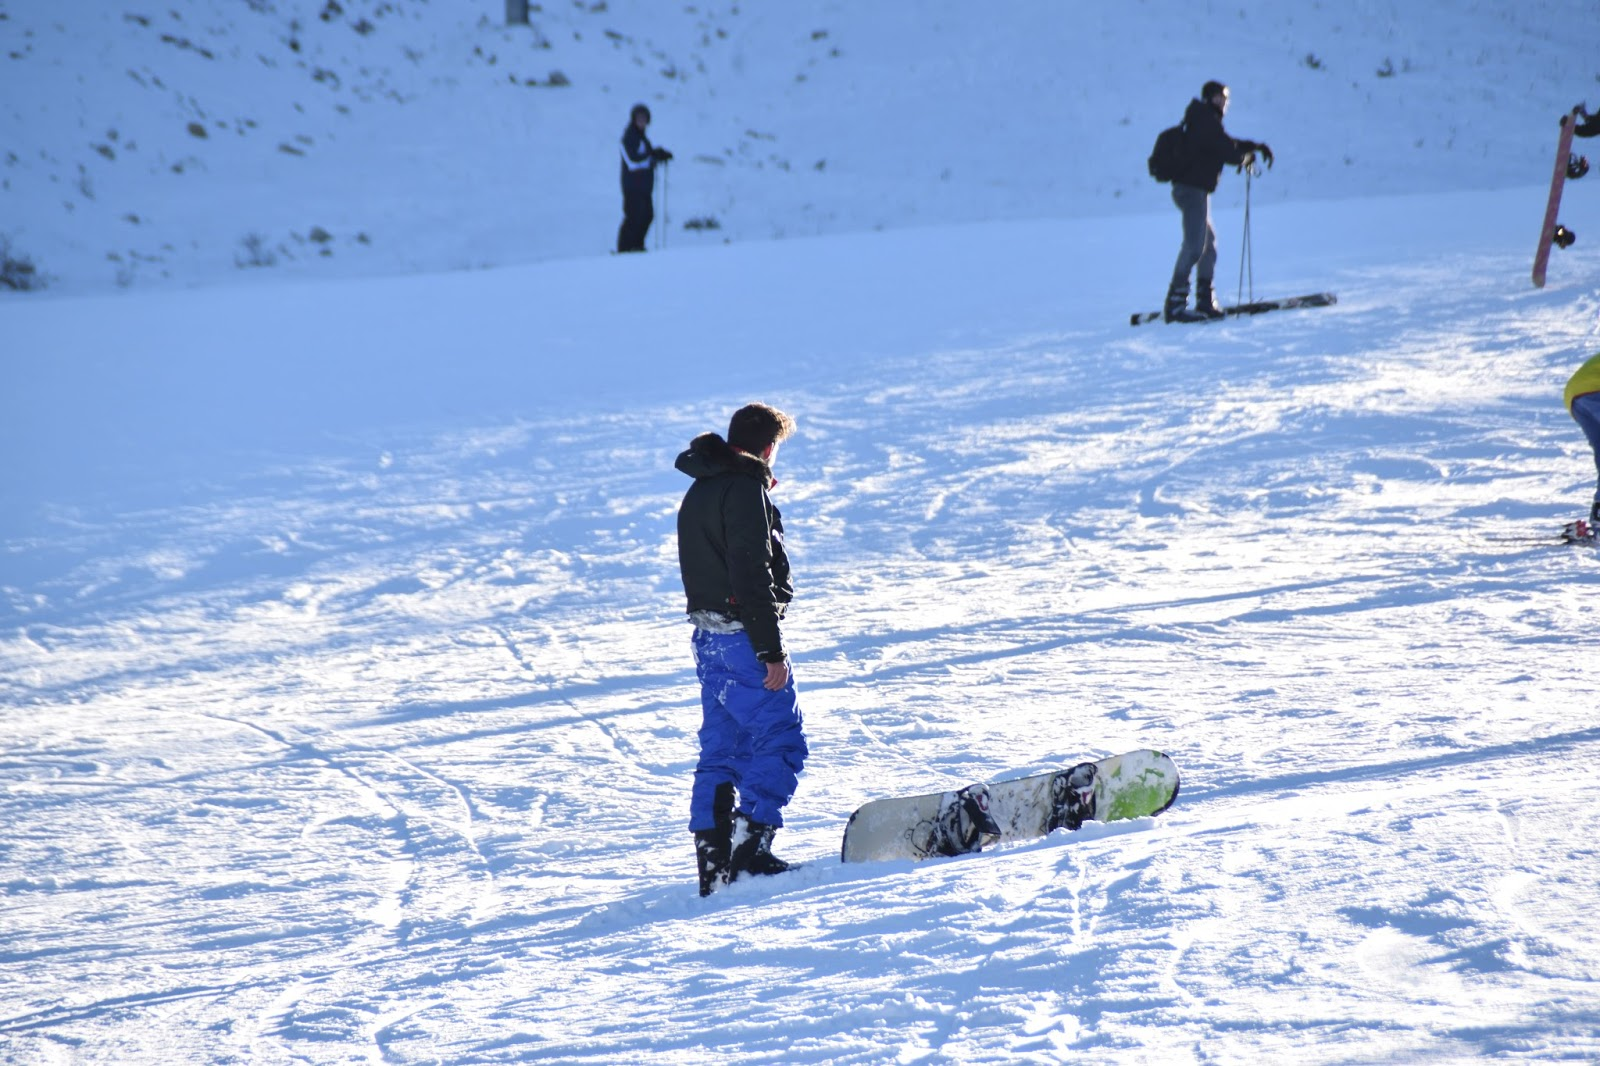 Snowboard runs at Bansko Ski Resort